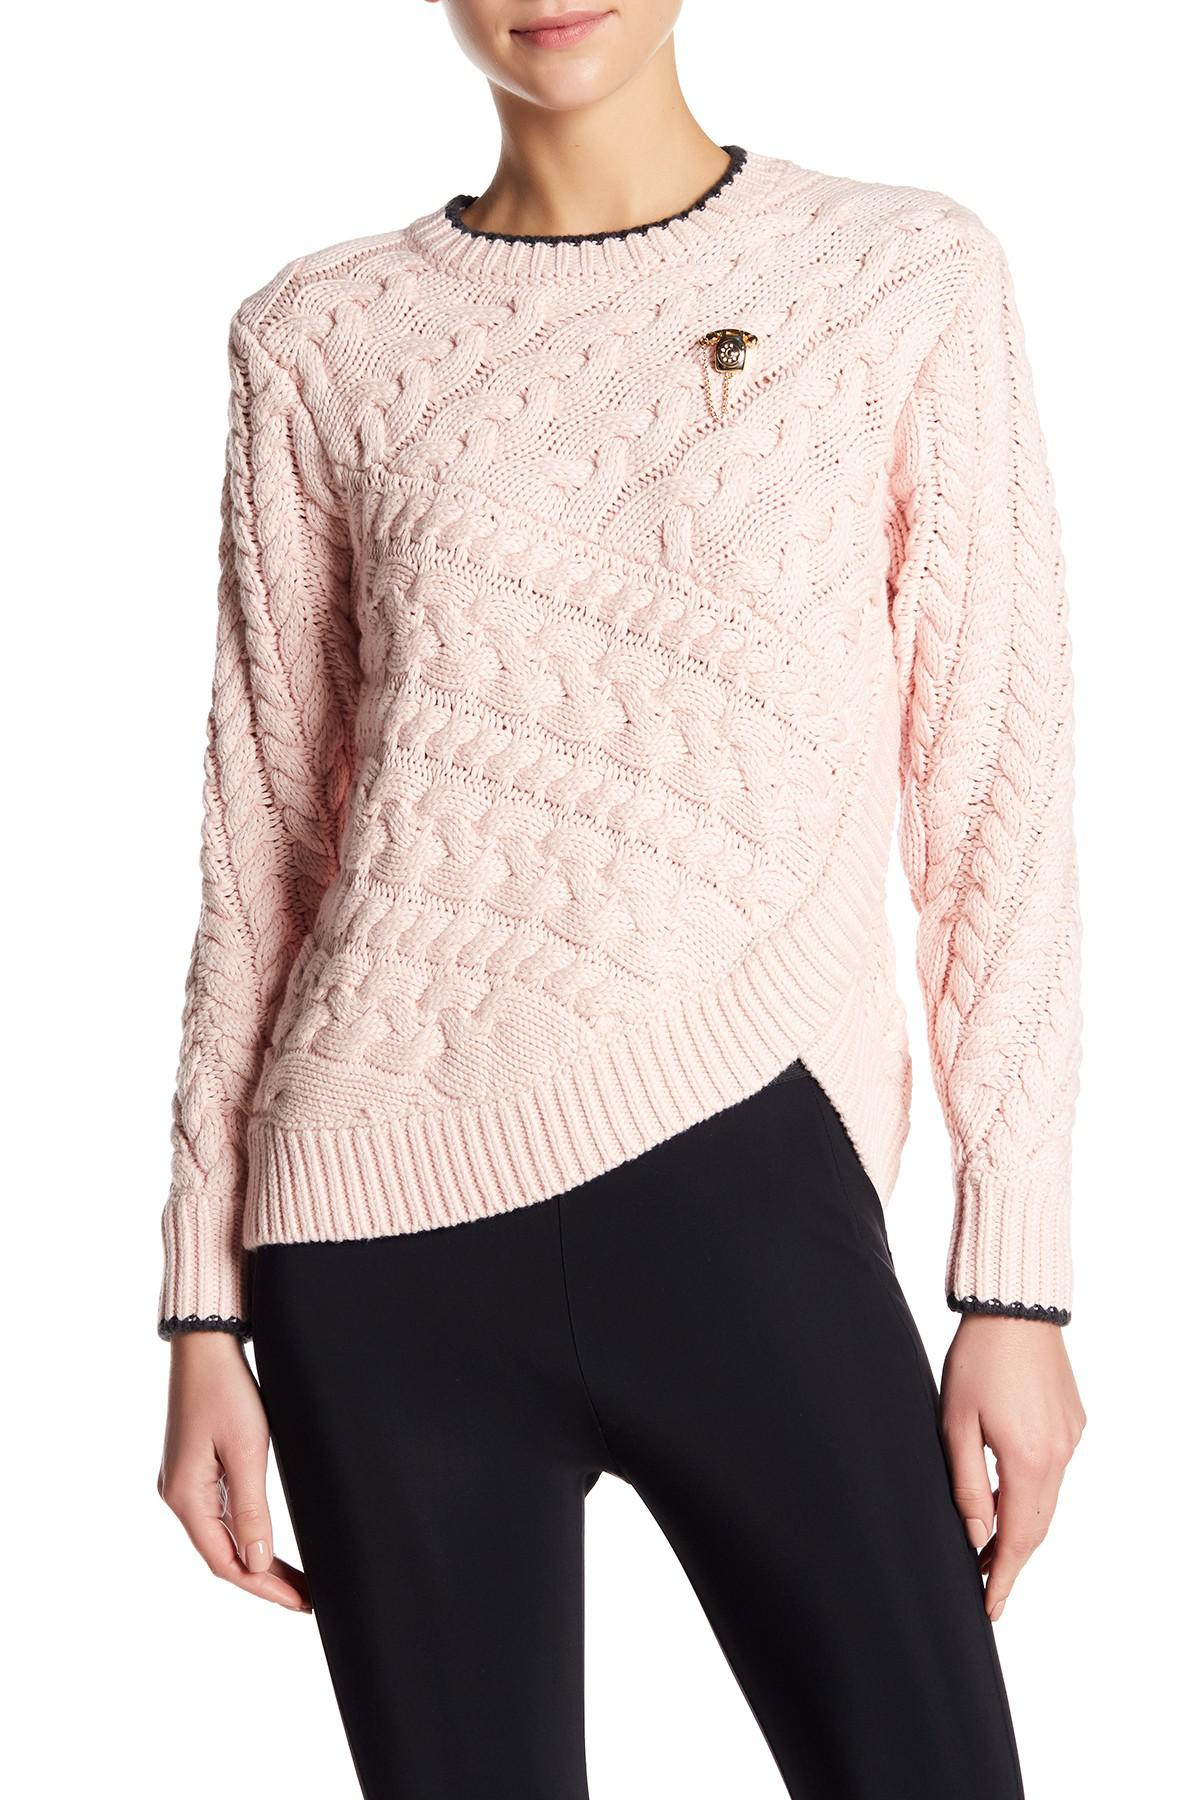 ffb6c8e281dc23 Gallery. Previously sold at: Nordstrom Rack · Women's Cable Knit Sweaters